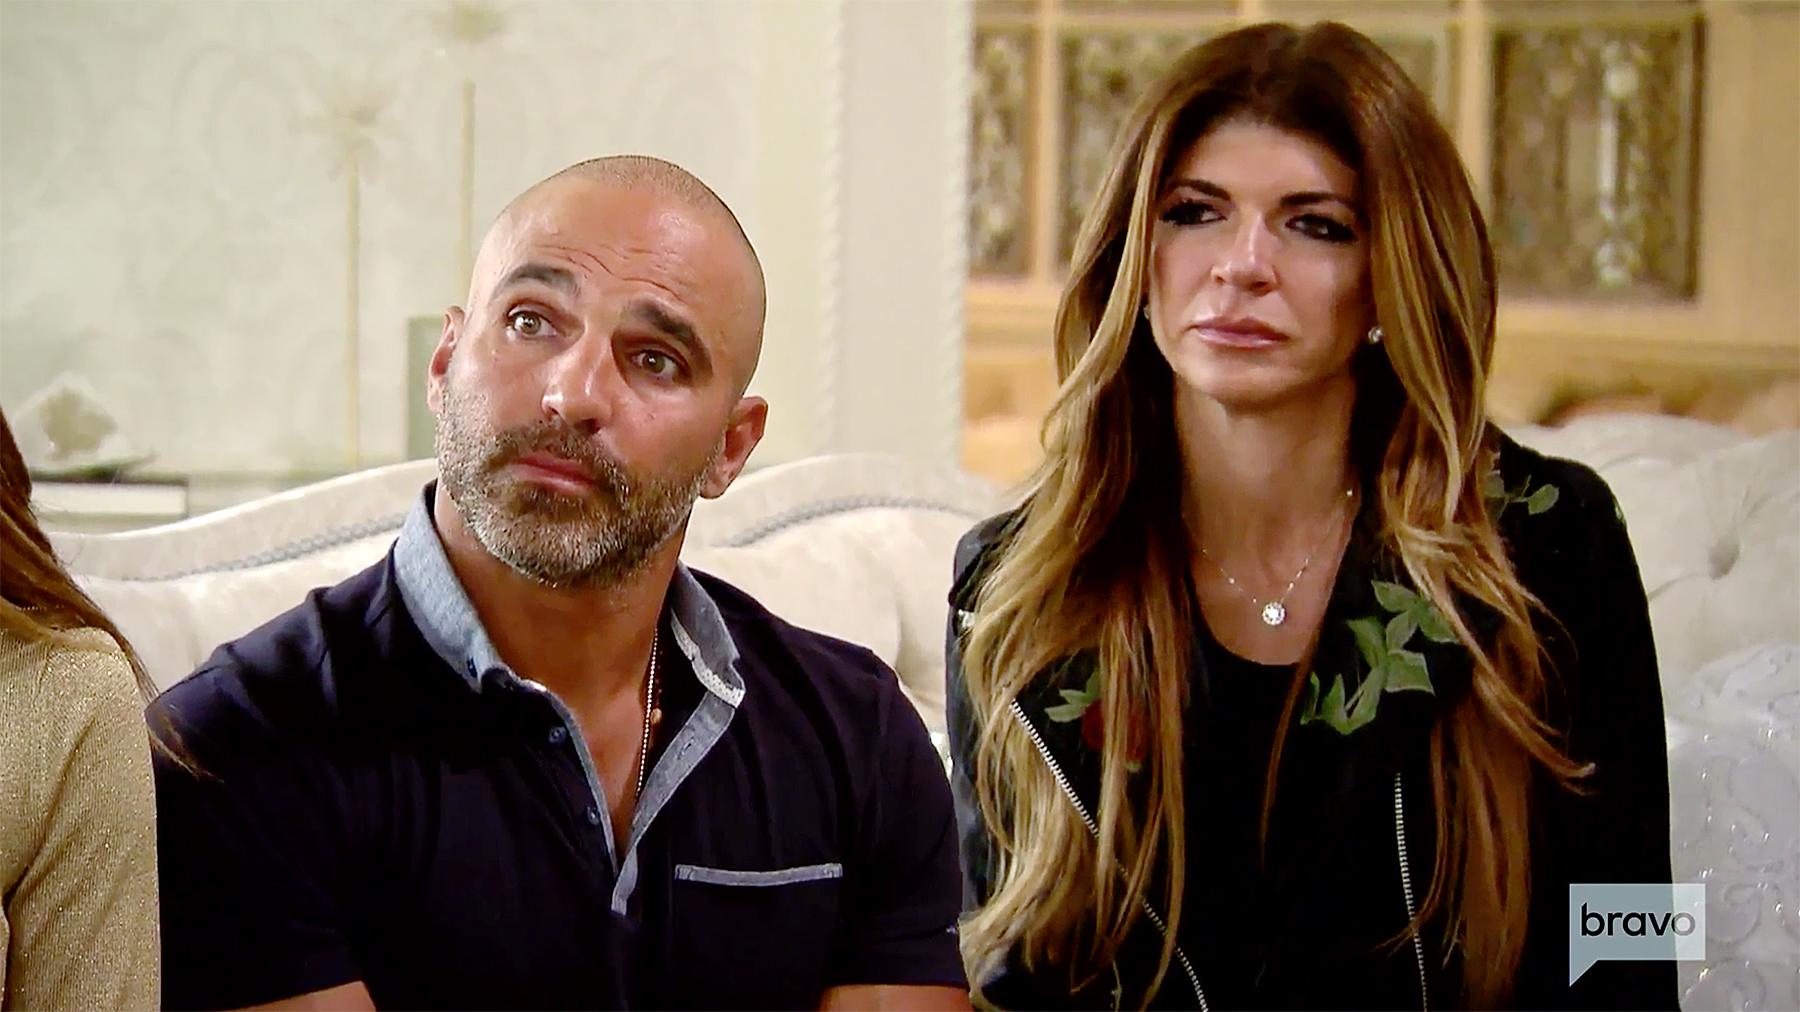 Joe Gorga Teresa Giudice visit medium